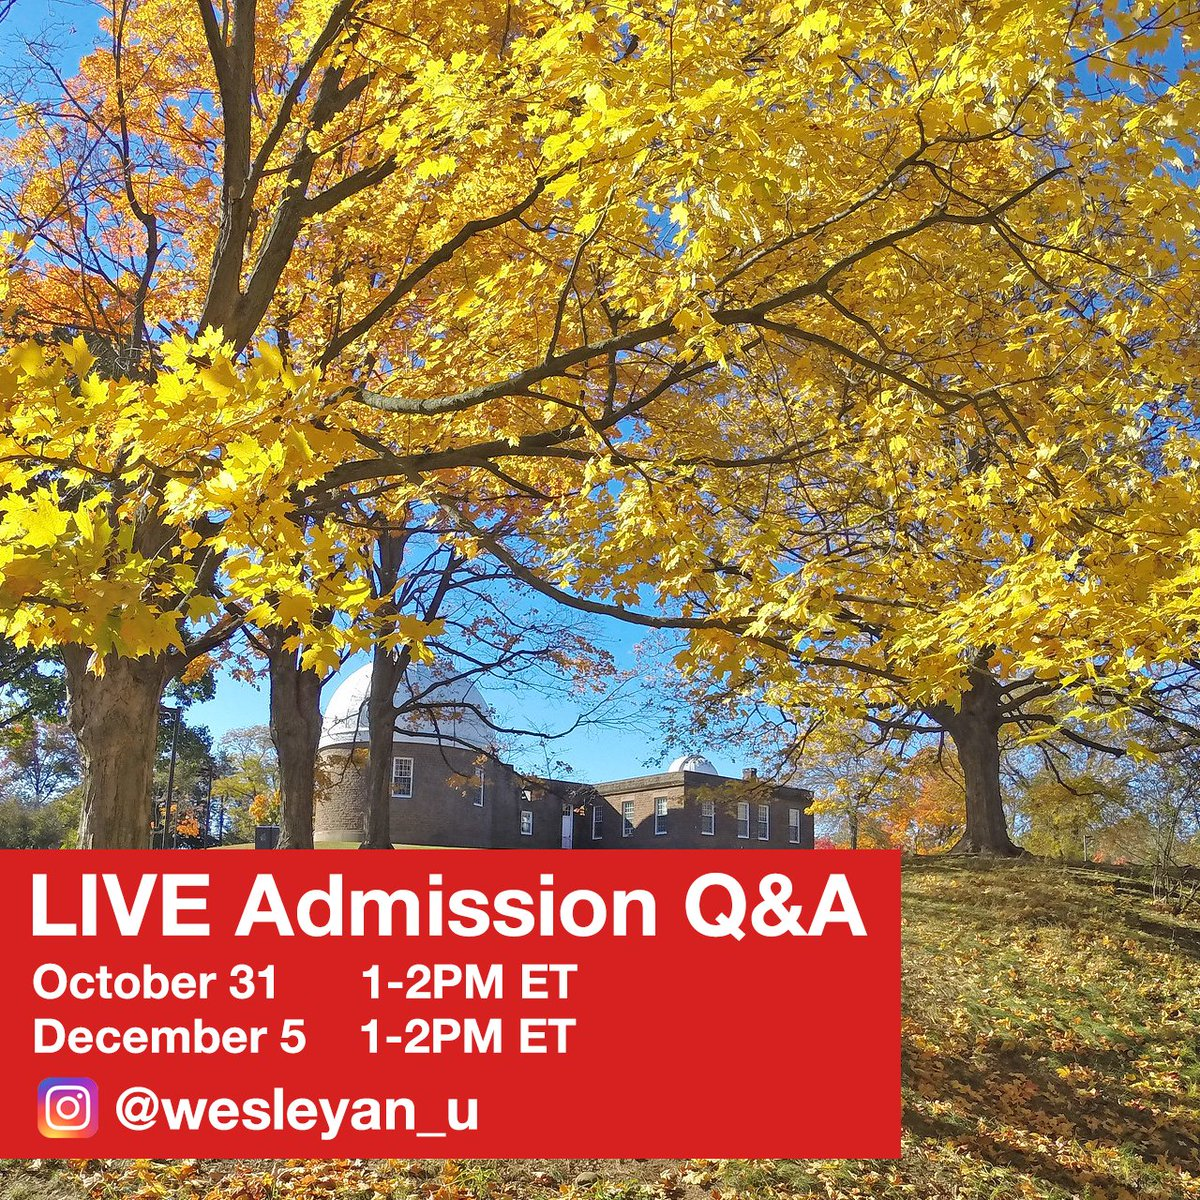 test Twitter Media - Mark your calendars and register today: https://t.co/cIcgoQ1nX1  Our students are eager to tell you more about Wes!   The Admission Office invites our prospective students and families to our social media lives on October 31 and December 5, 1-2PM ET. https://t.co/SXSNpUfUgz